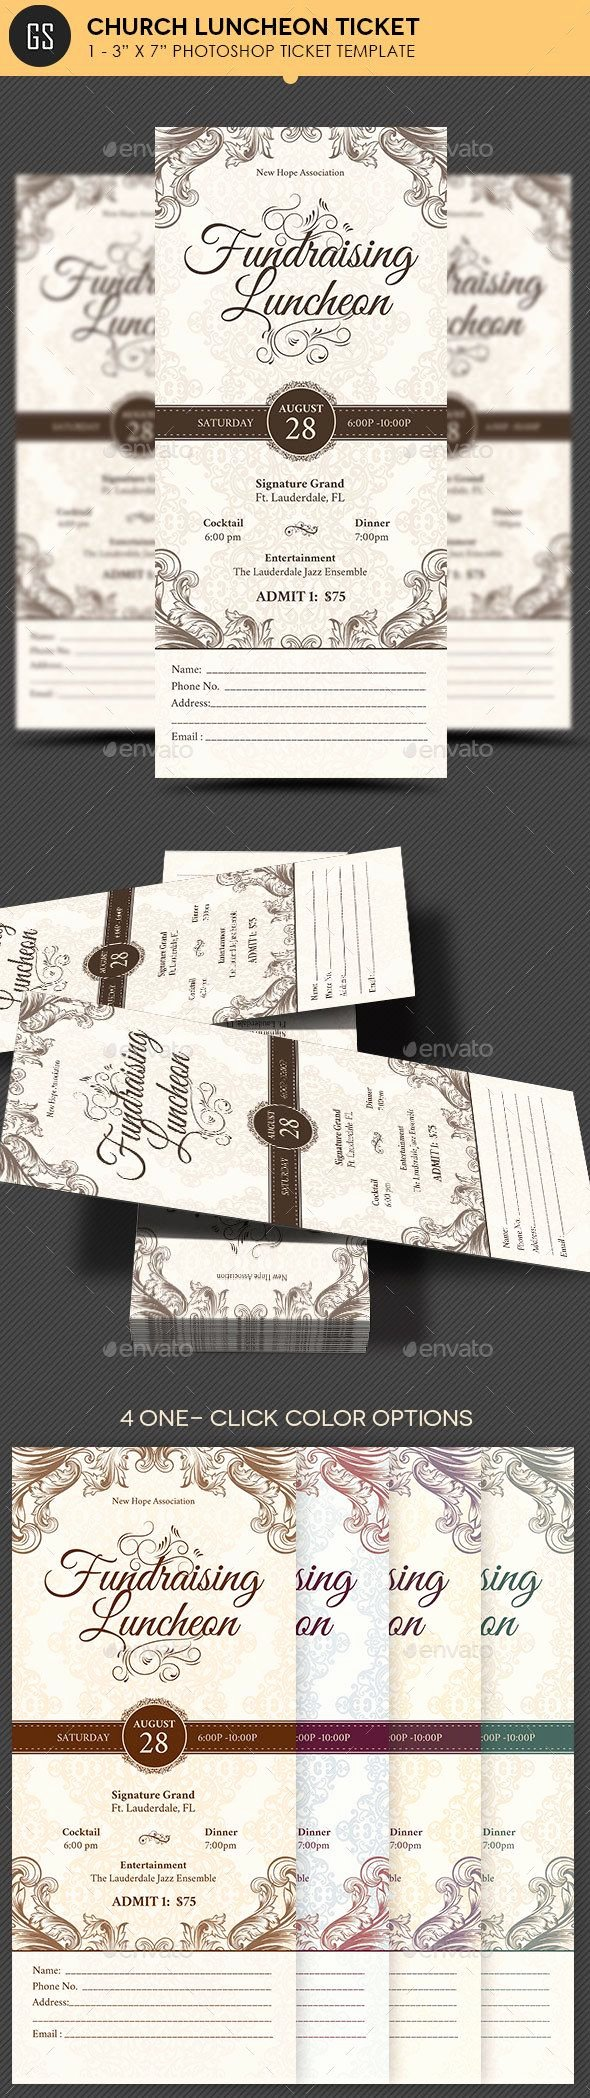 Event Ticket Template Photoshop Beautiful Church Luncheon Ticket Template